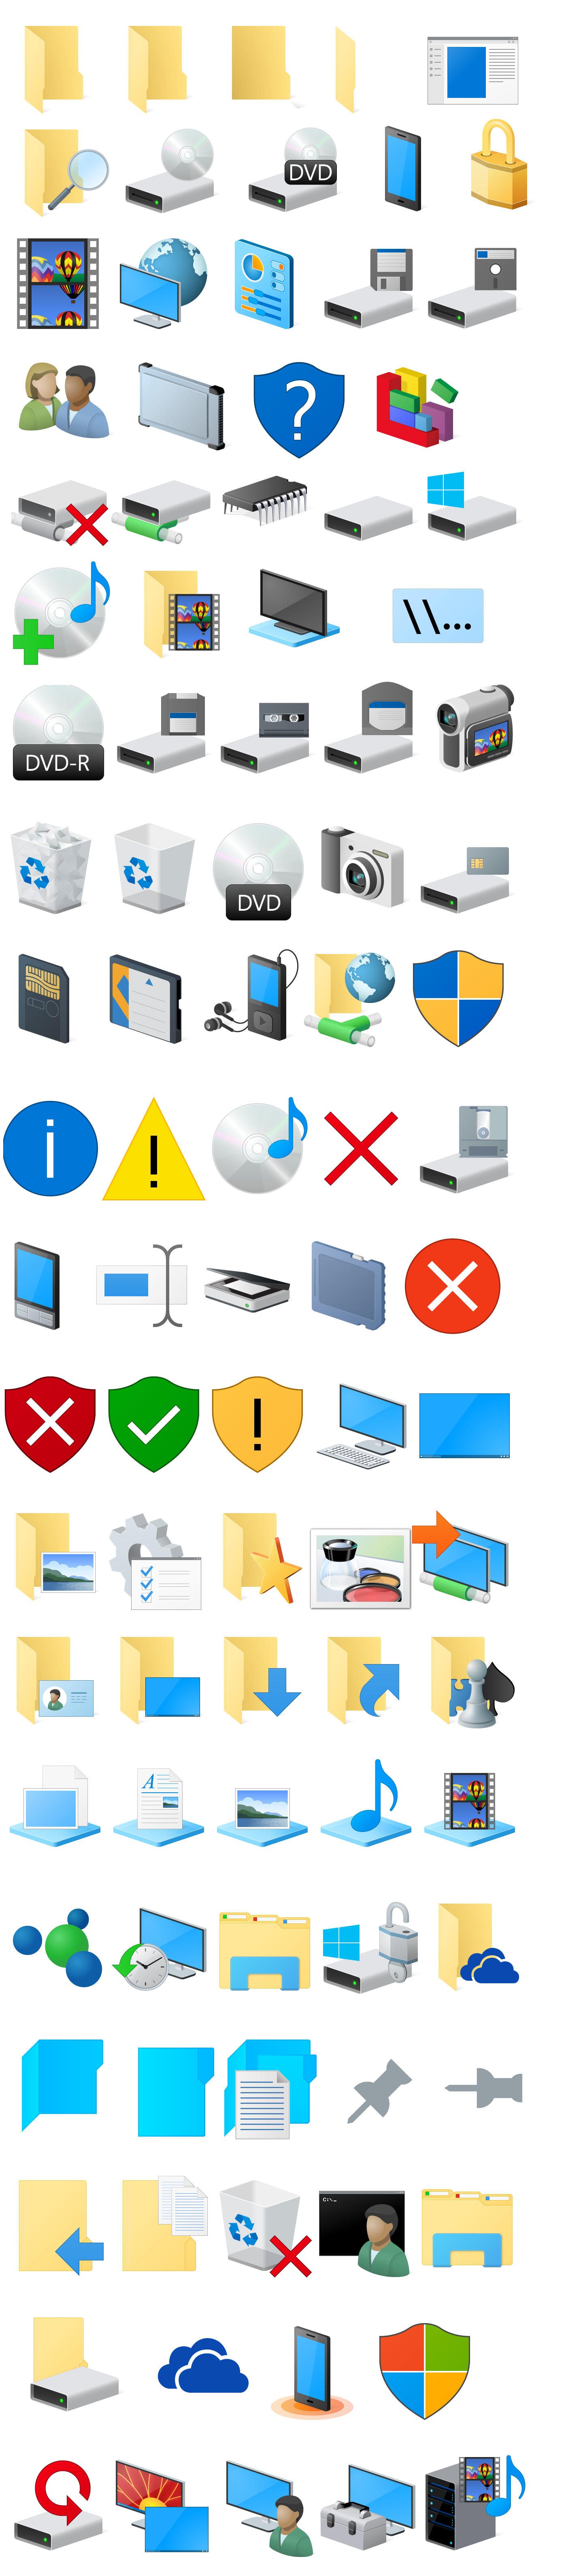 windows10icons